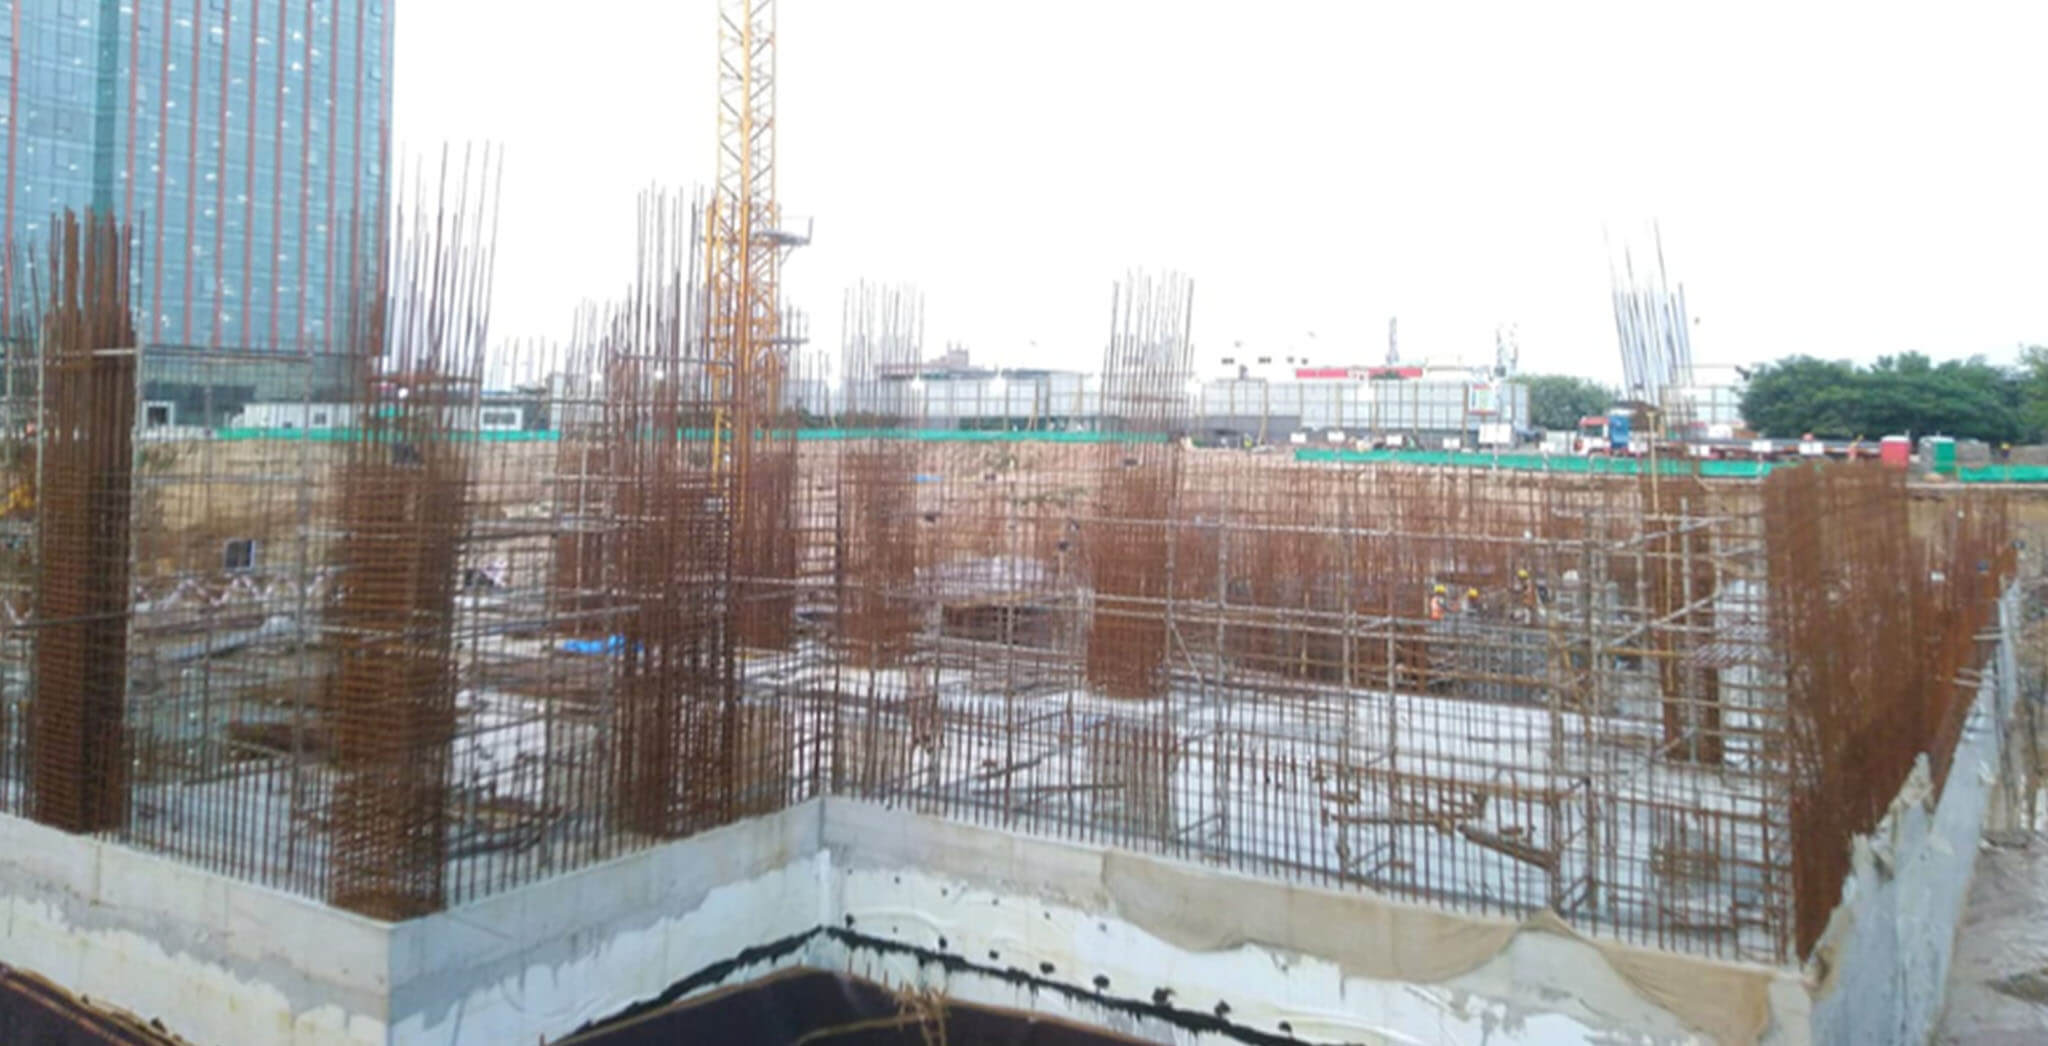 Sep 2020 - Tower A1—Raft completed; Tower B1—slab 60% completed